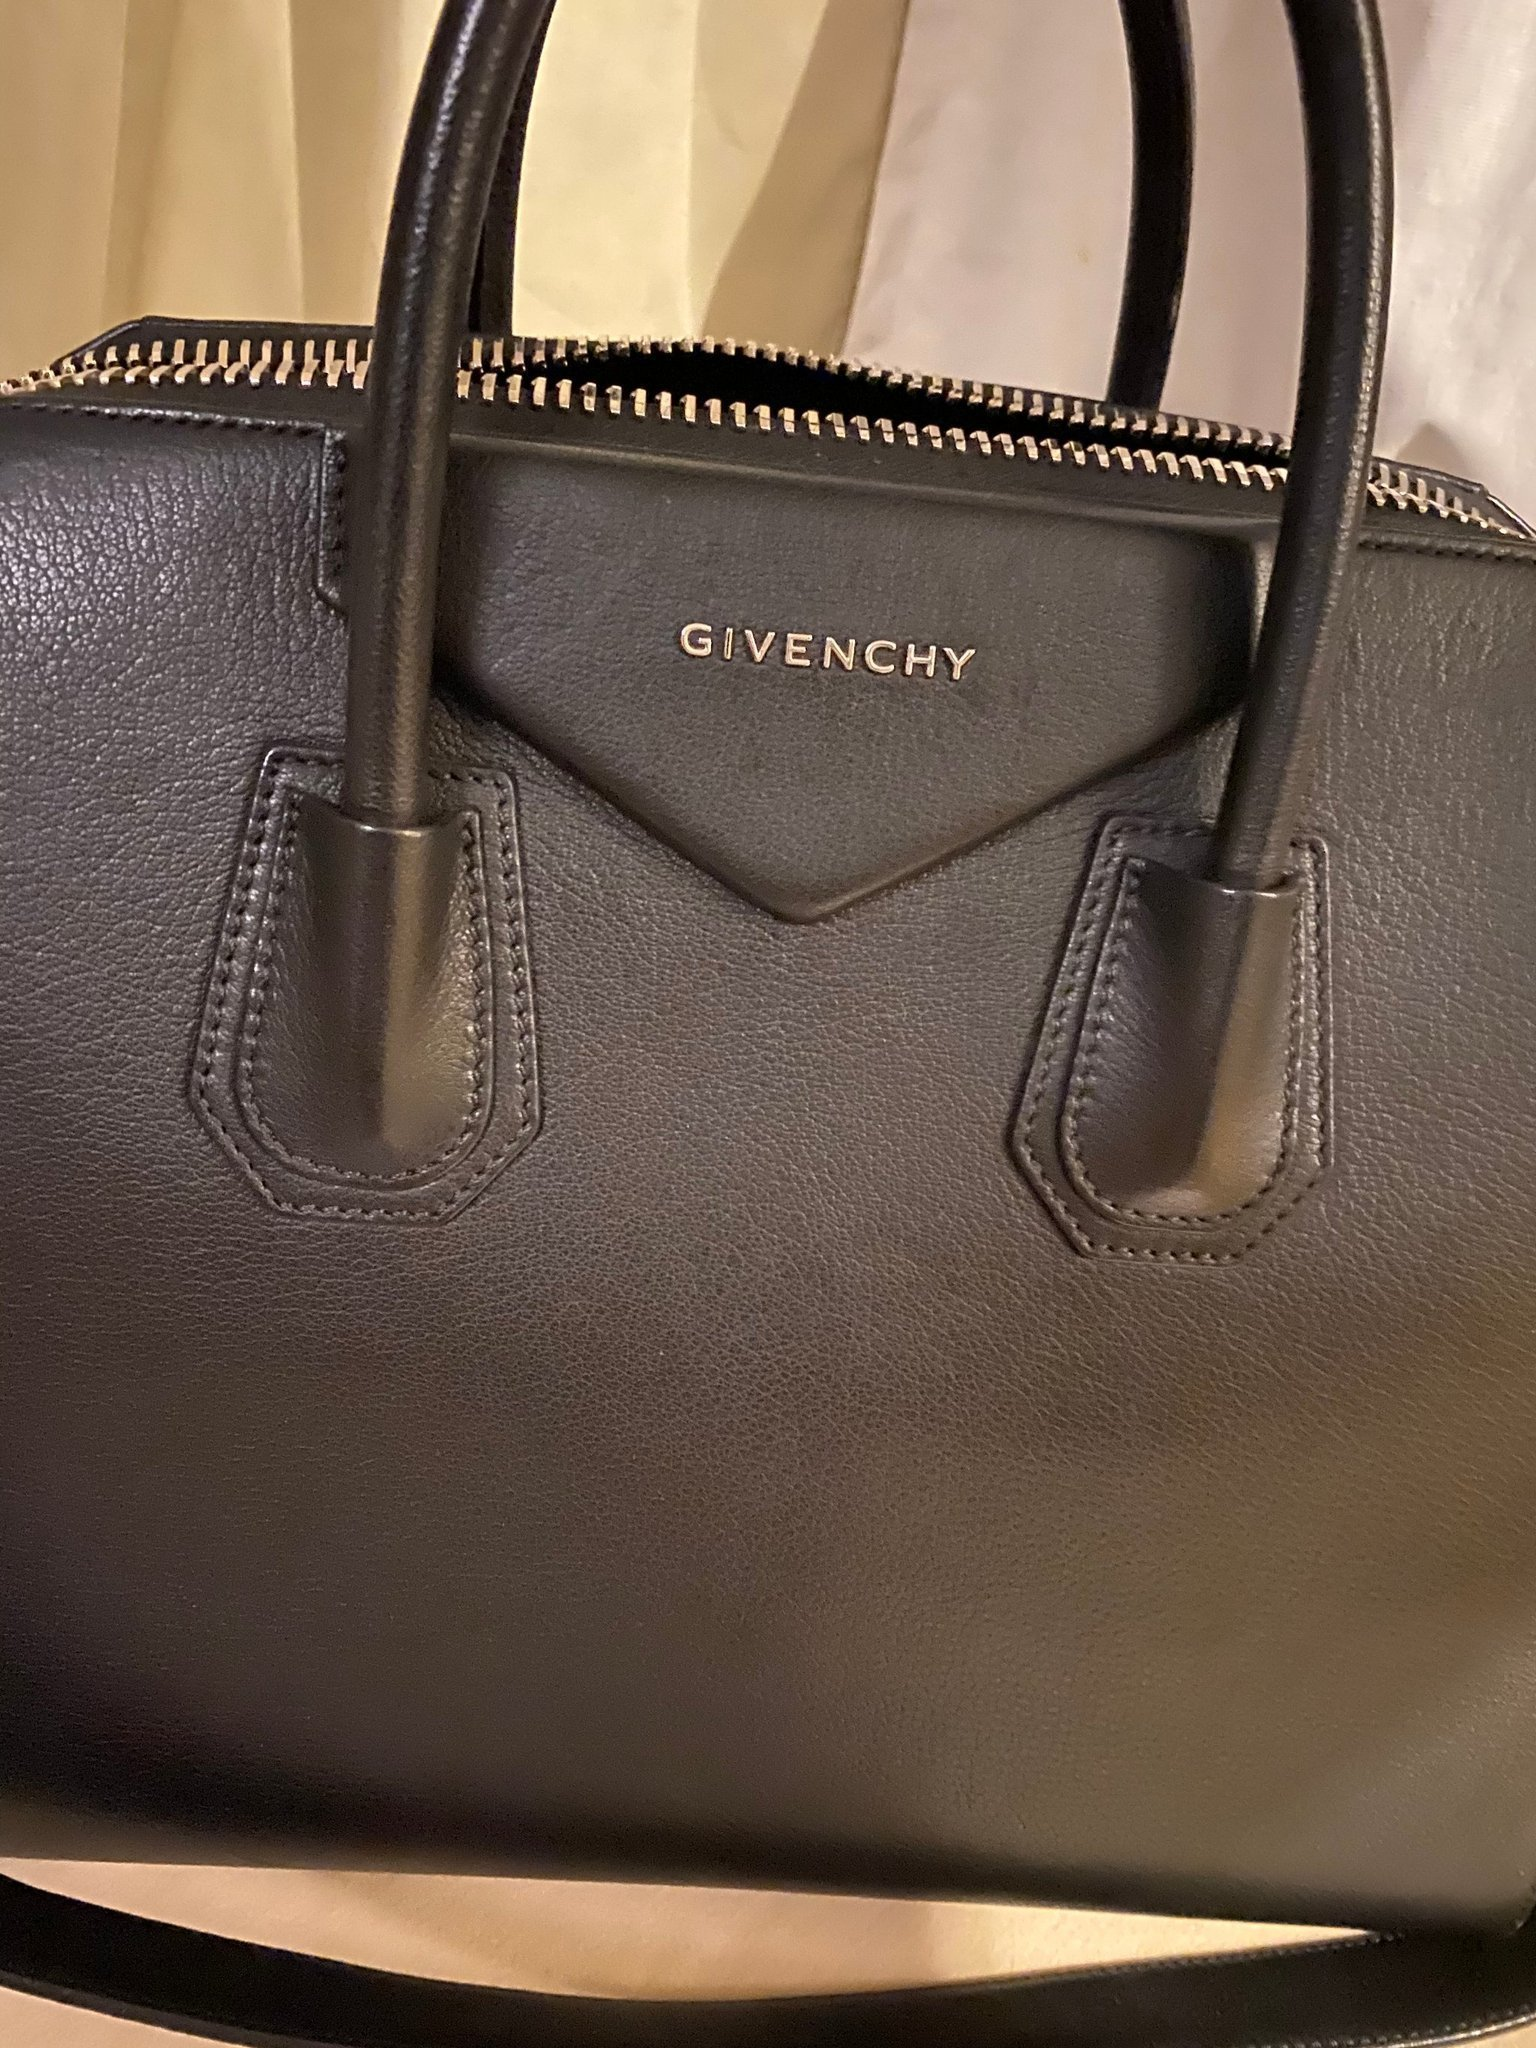 Givenchy Antigona väska Medium med kvitto